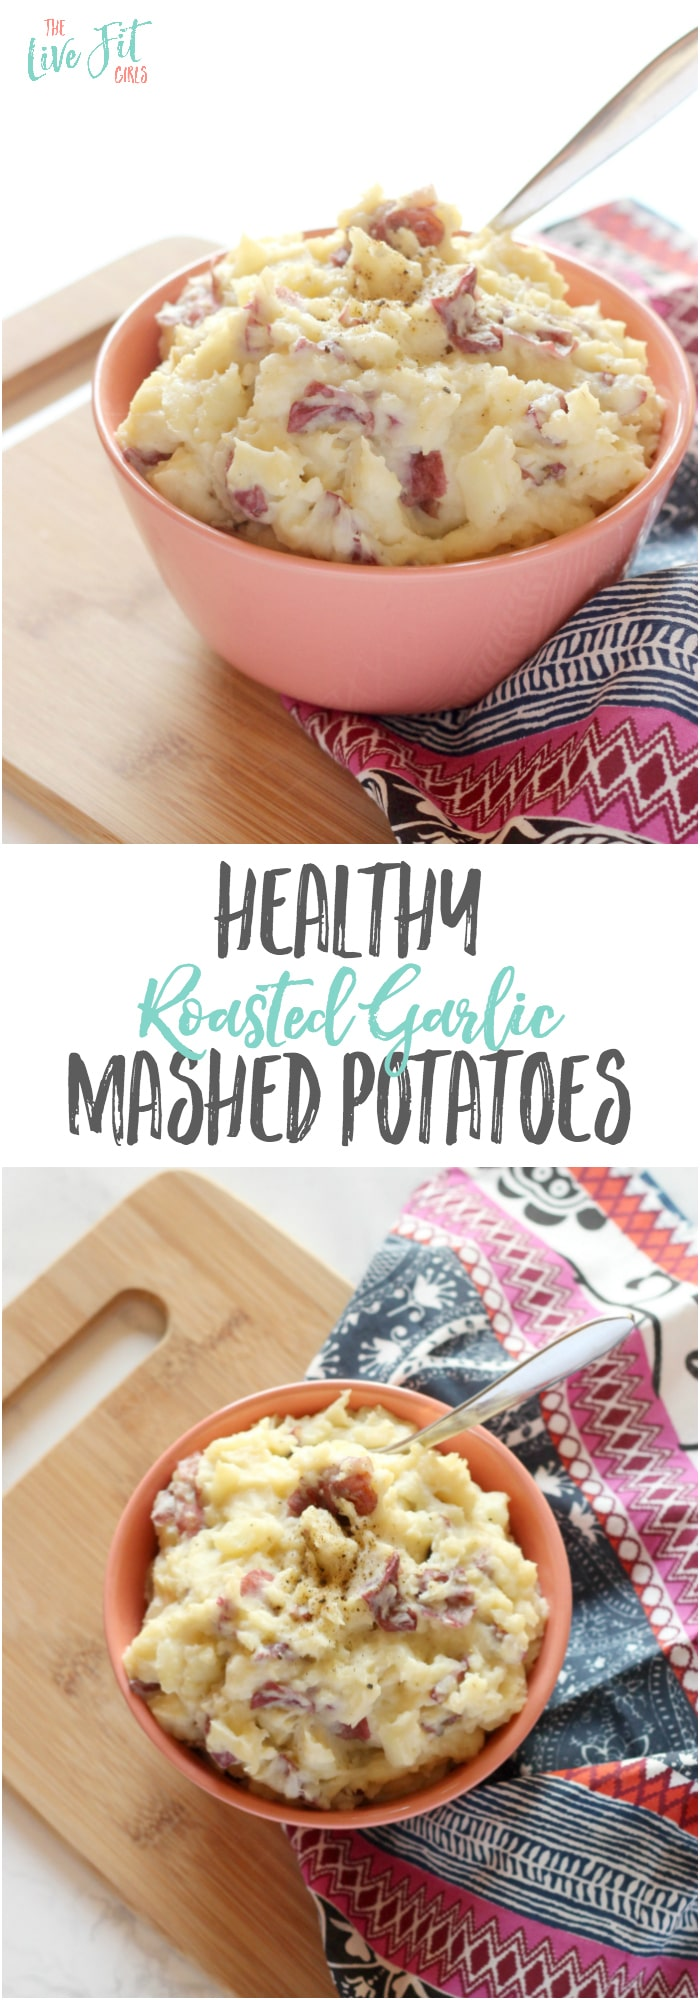 healthy-mashed-potatoes-pin